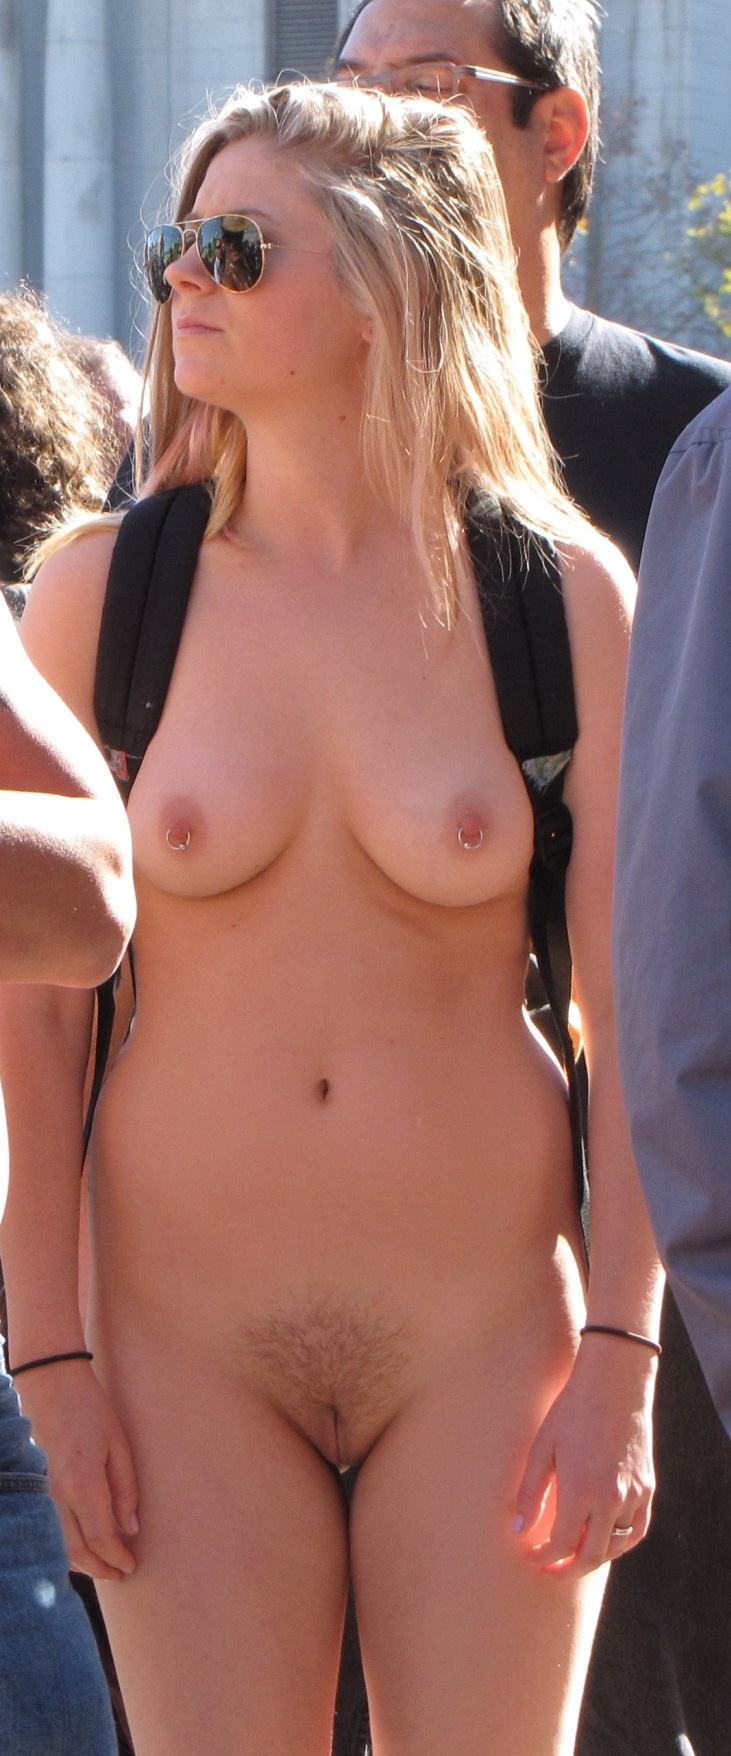 German handjob outside